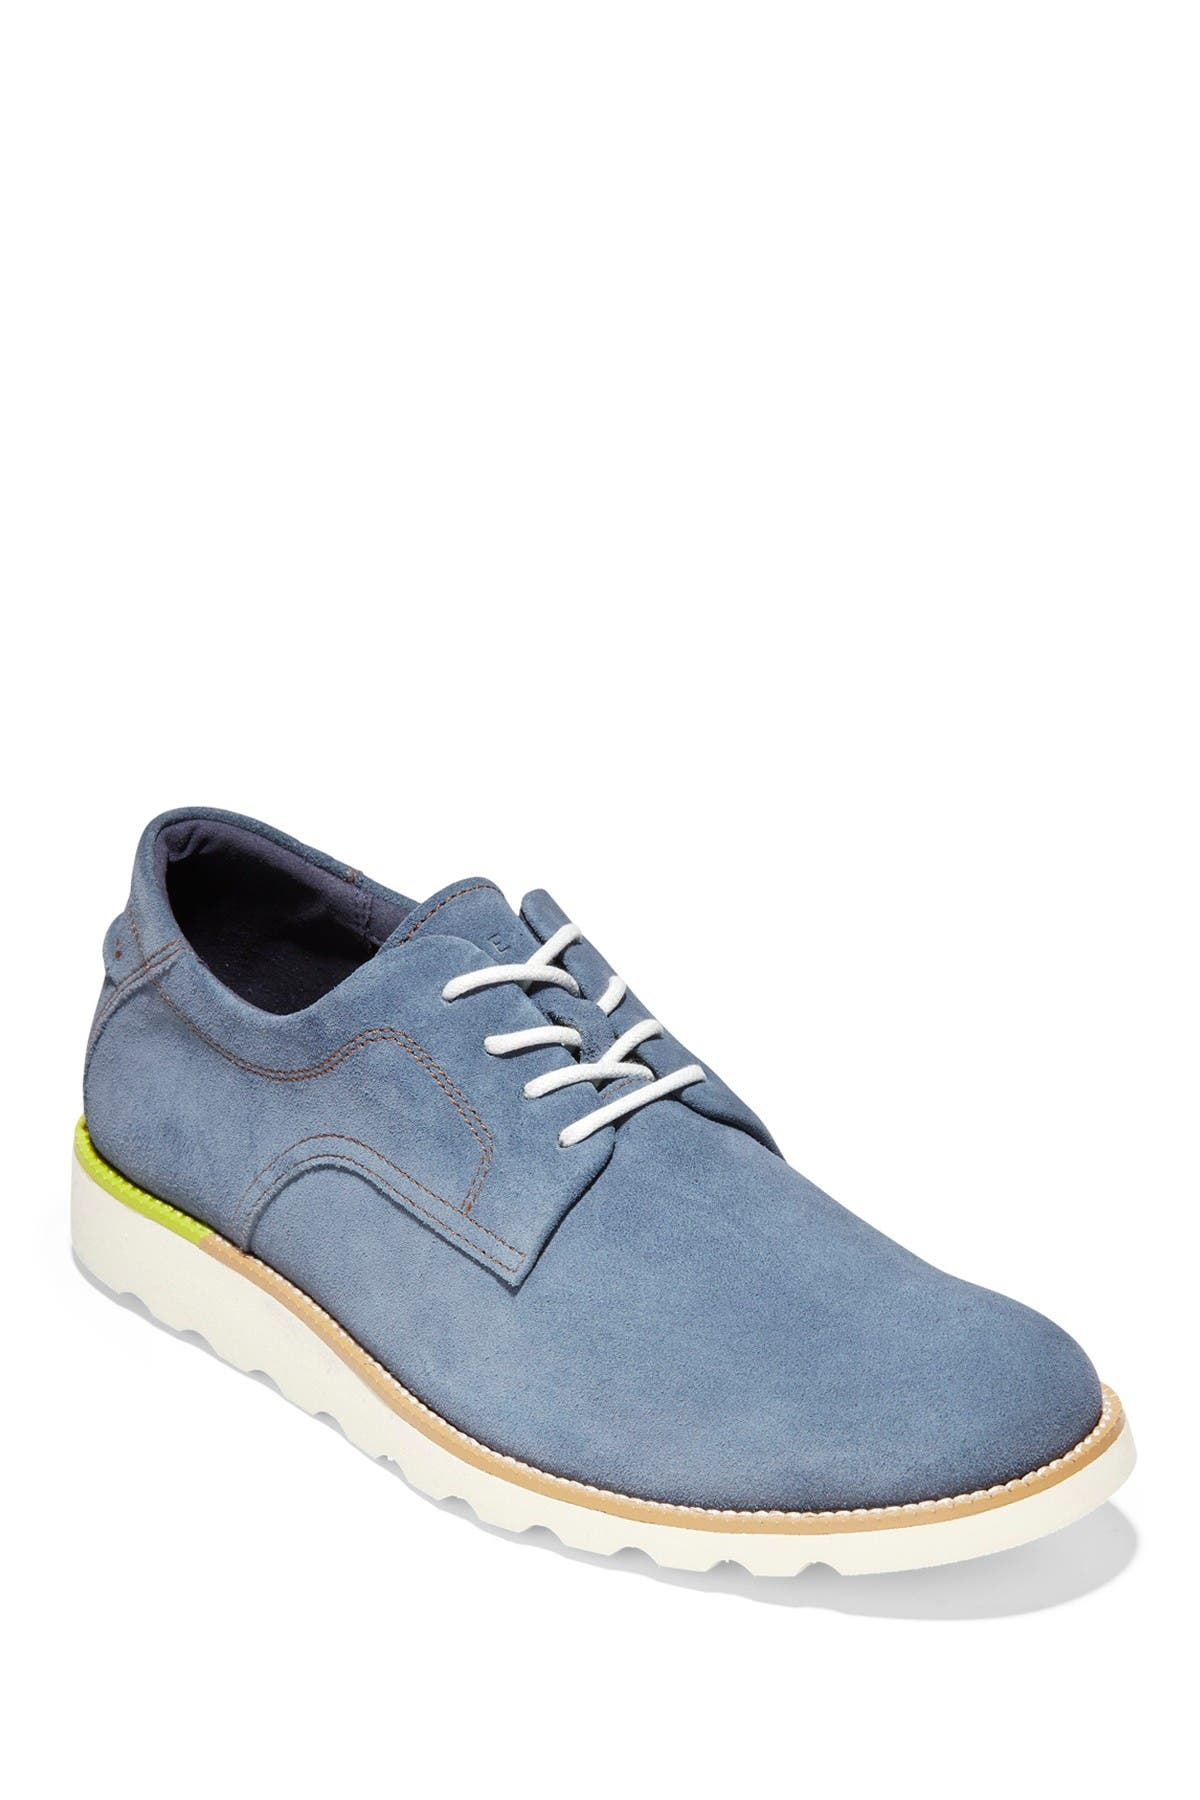 Image of Cole Haan Nantucket Suede Oxford